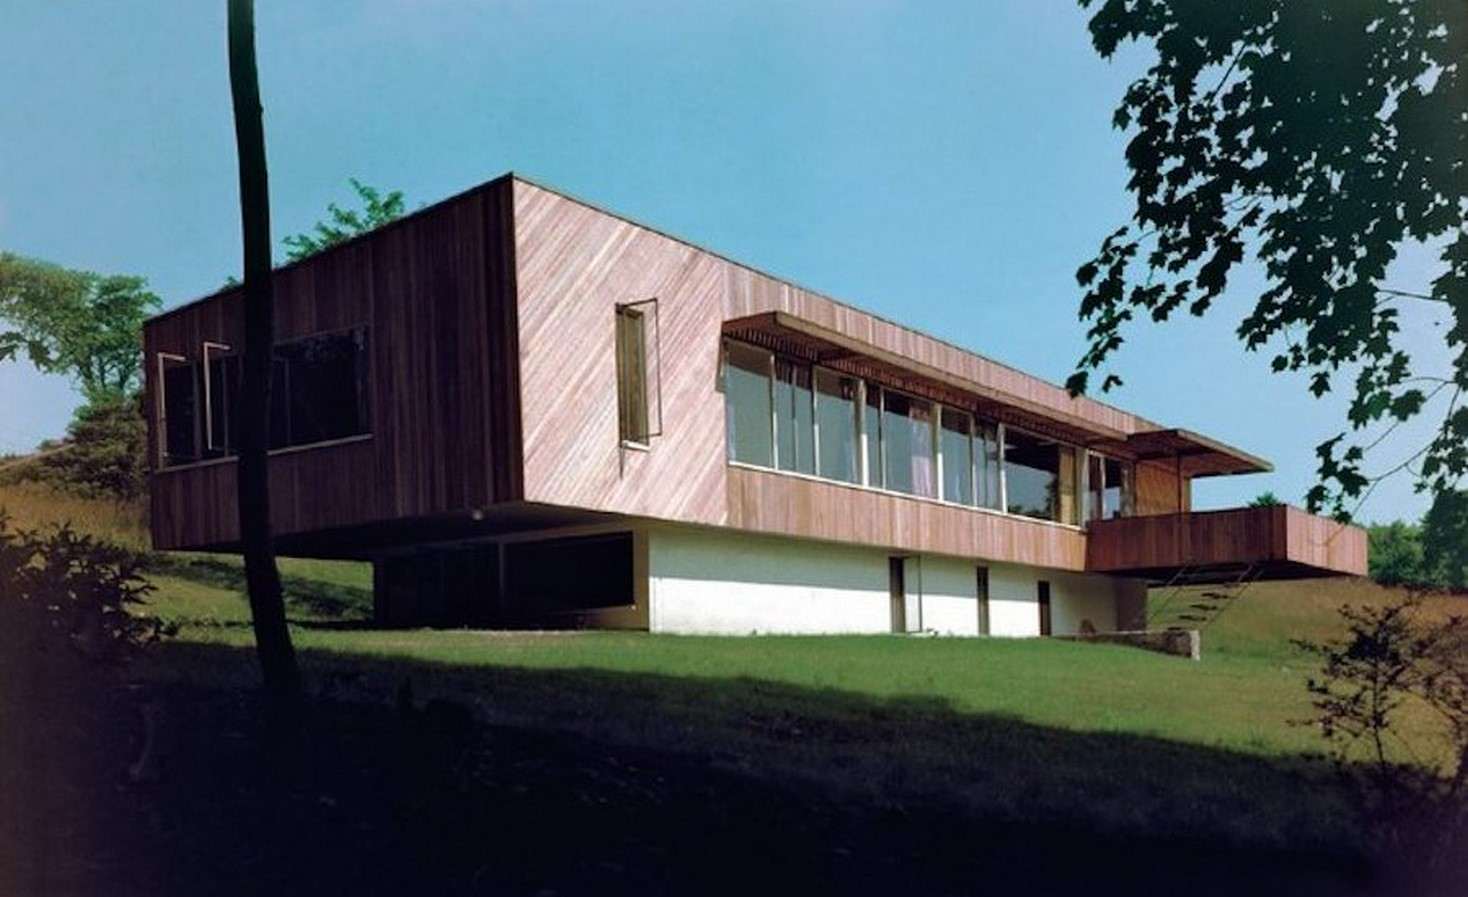 10 things you did not know about Marcel Breuer - Sheet11